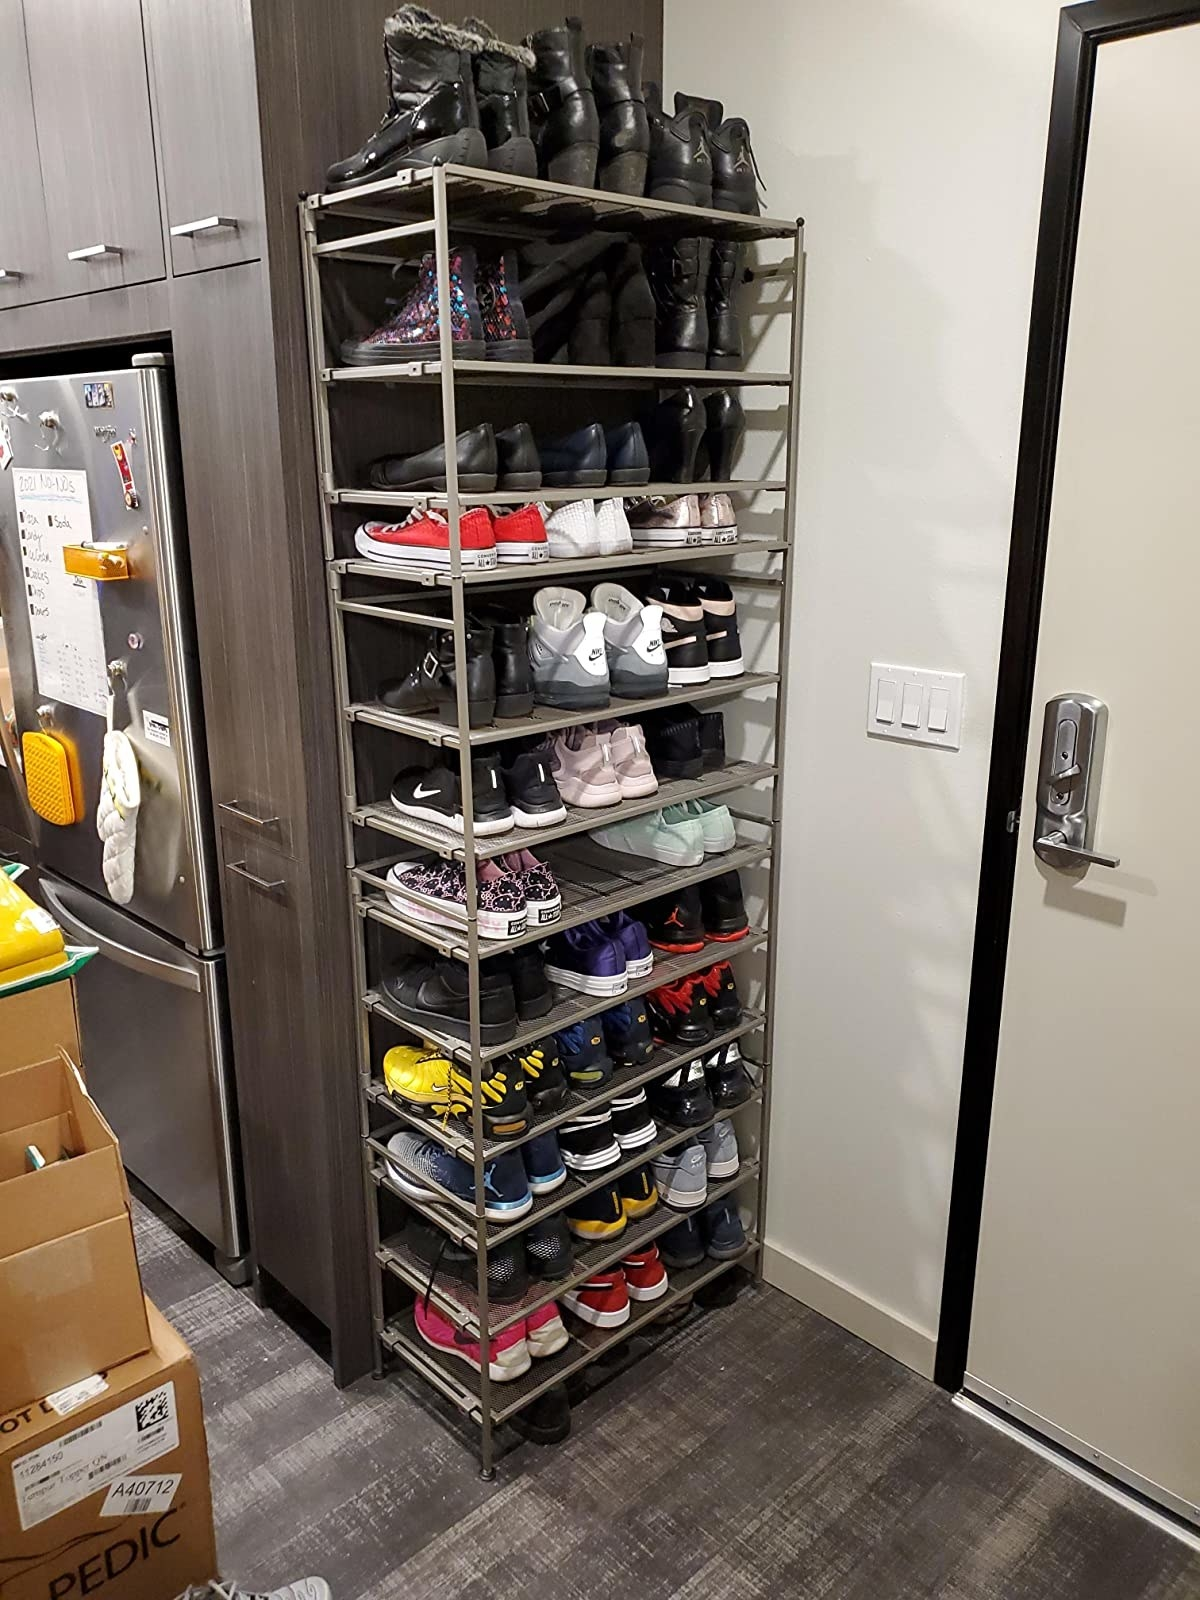 reviewer photo showing several of the shoe racks stacked together in their kitchen